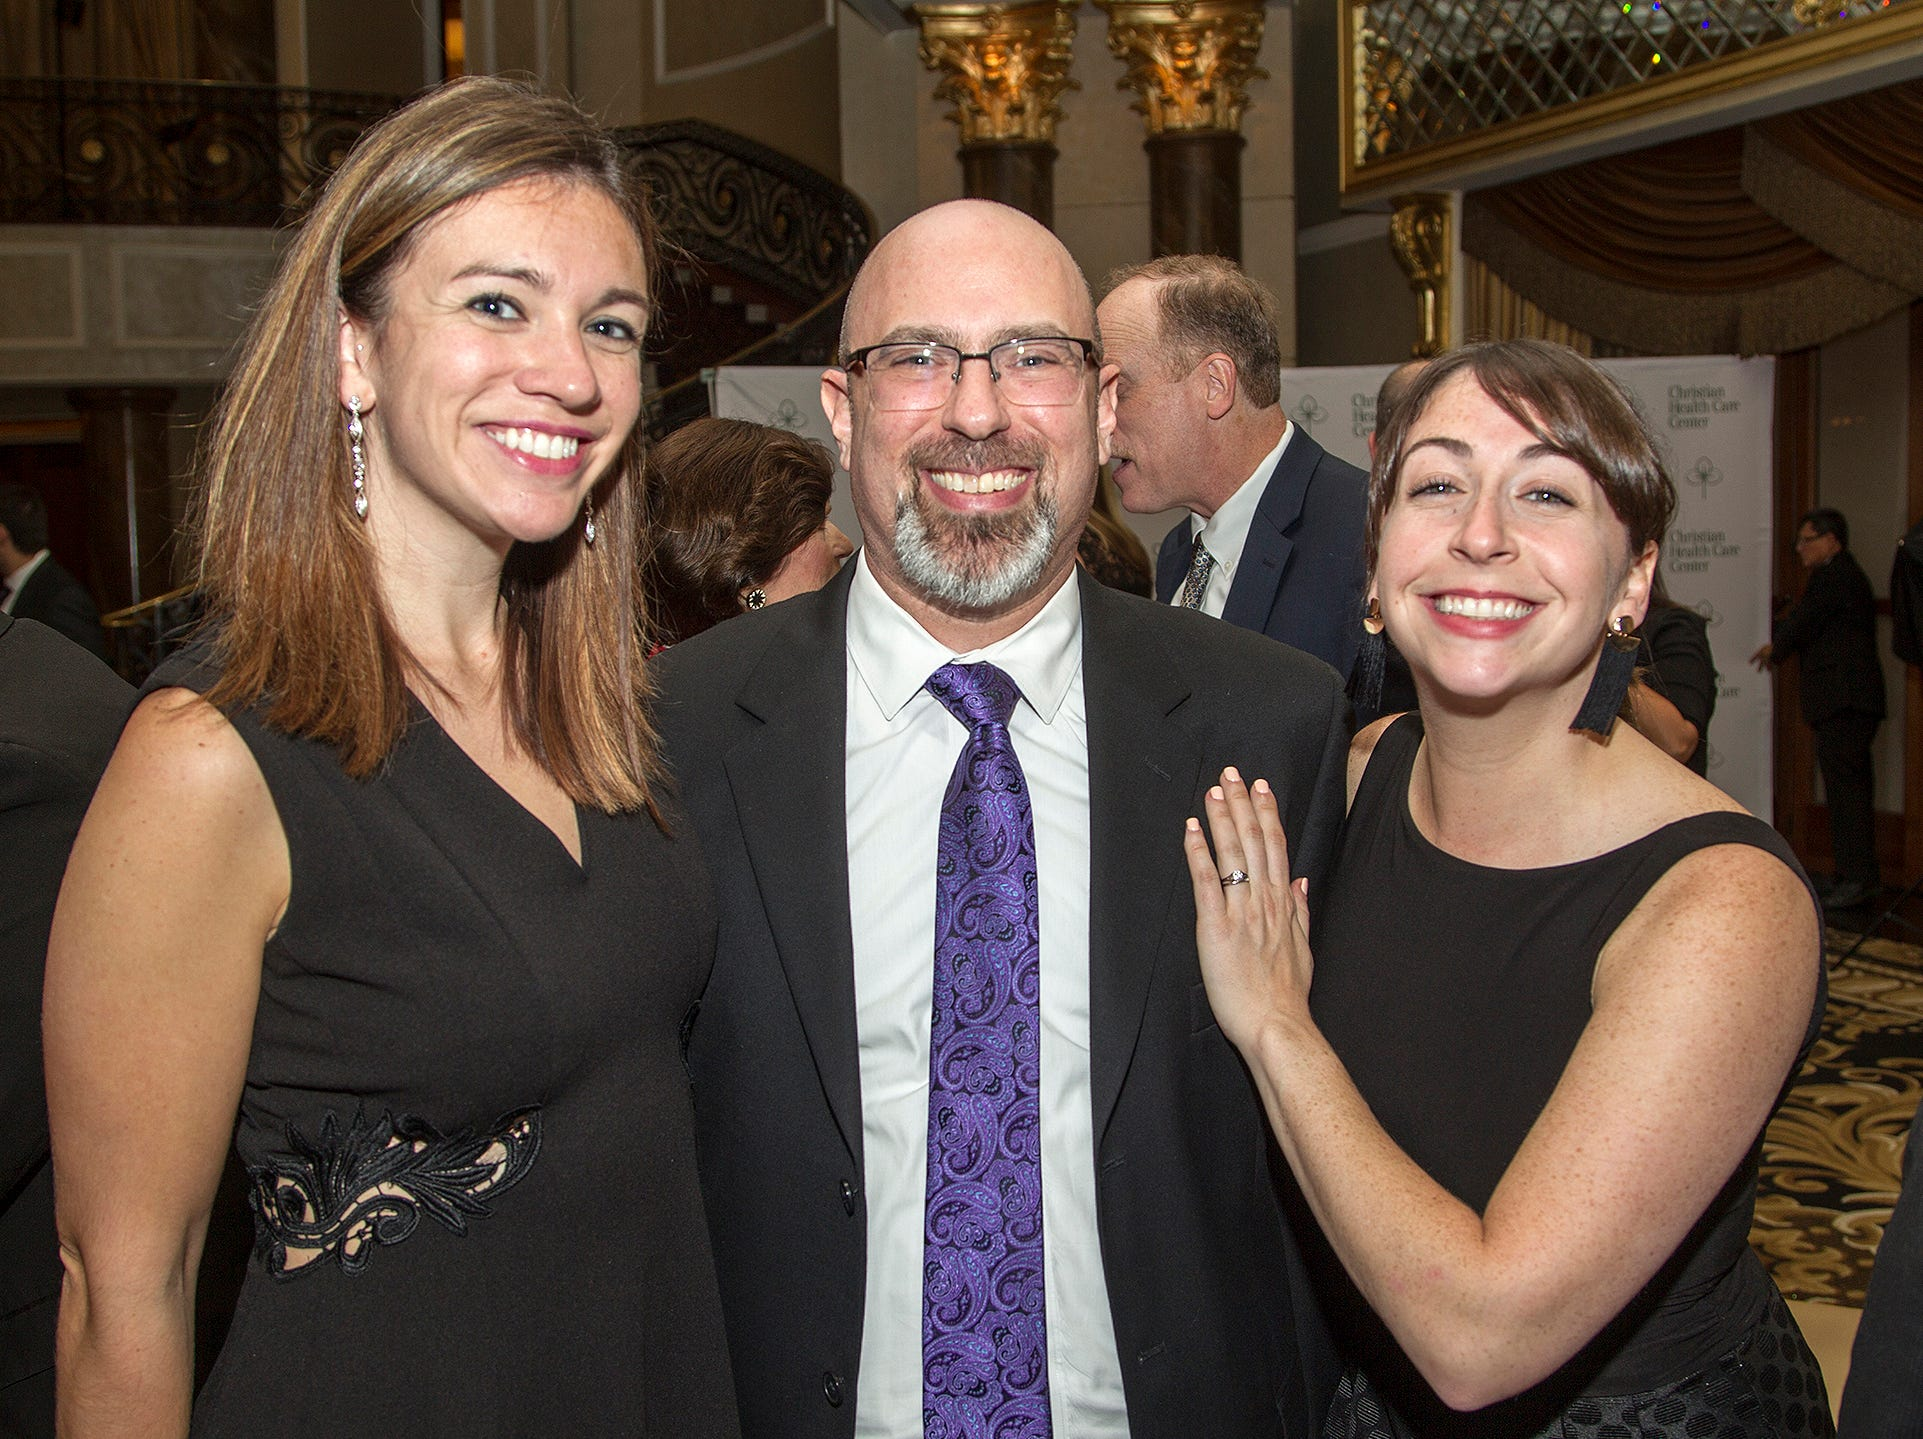 Kathleen Whitehouse, Aaron Pell, Michelle Caks. Christian Health Care Center held its ' A Celebration of Excellence' gala at the Venetian in Garfield.  10/17/2018